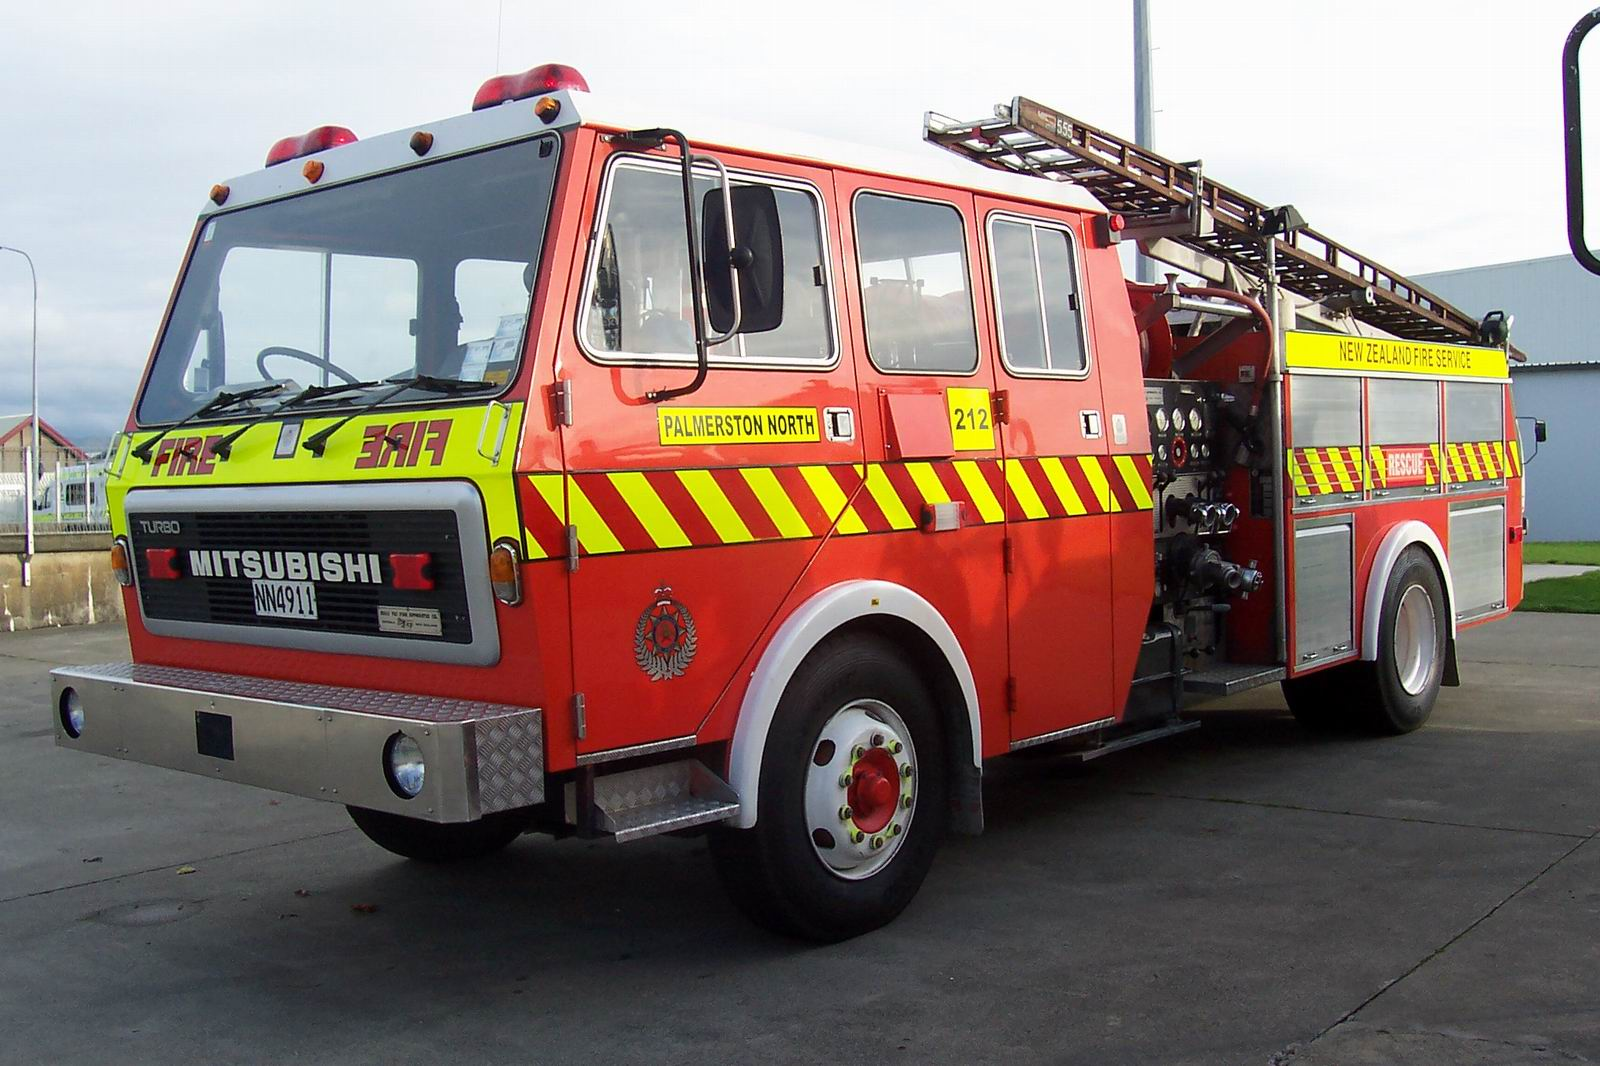 WESTERN FIRE APPLIANCES